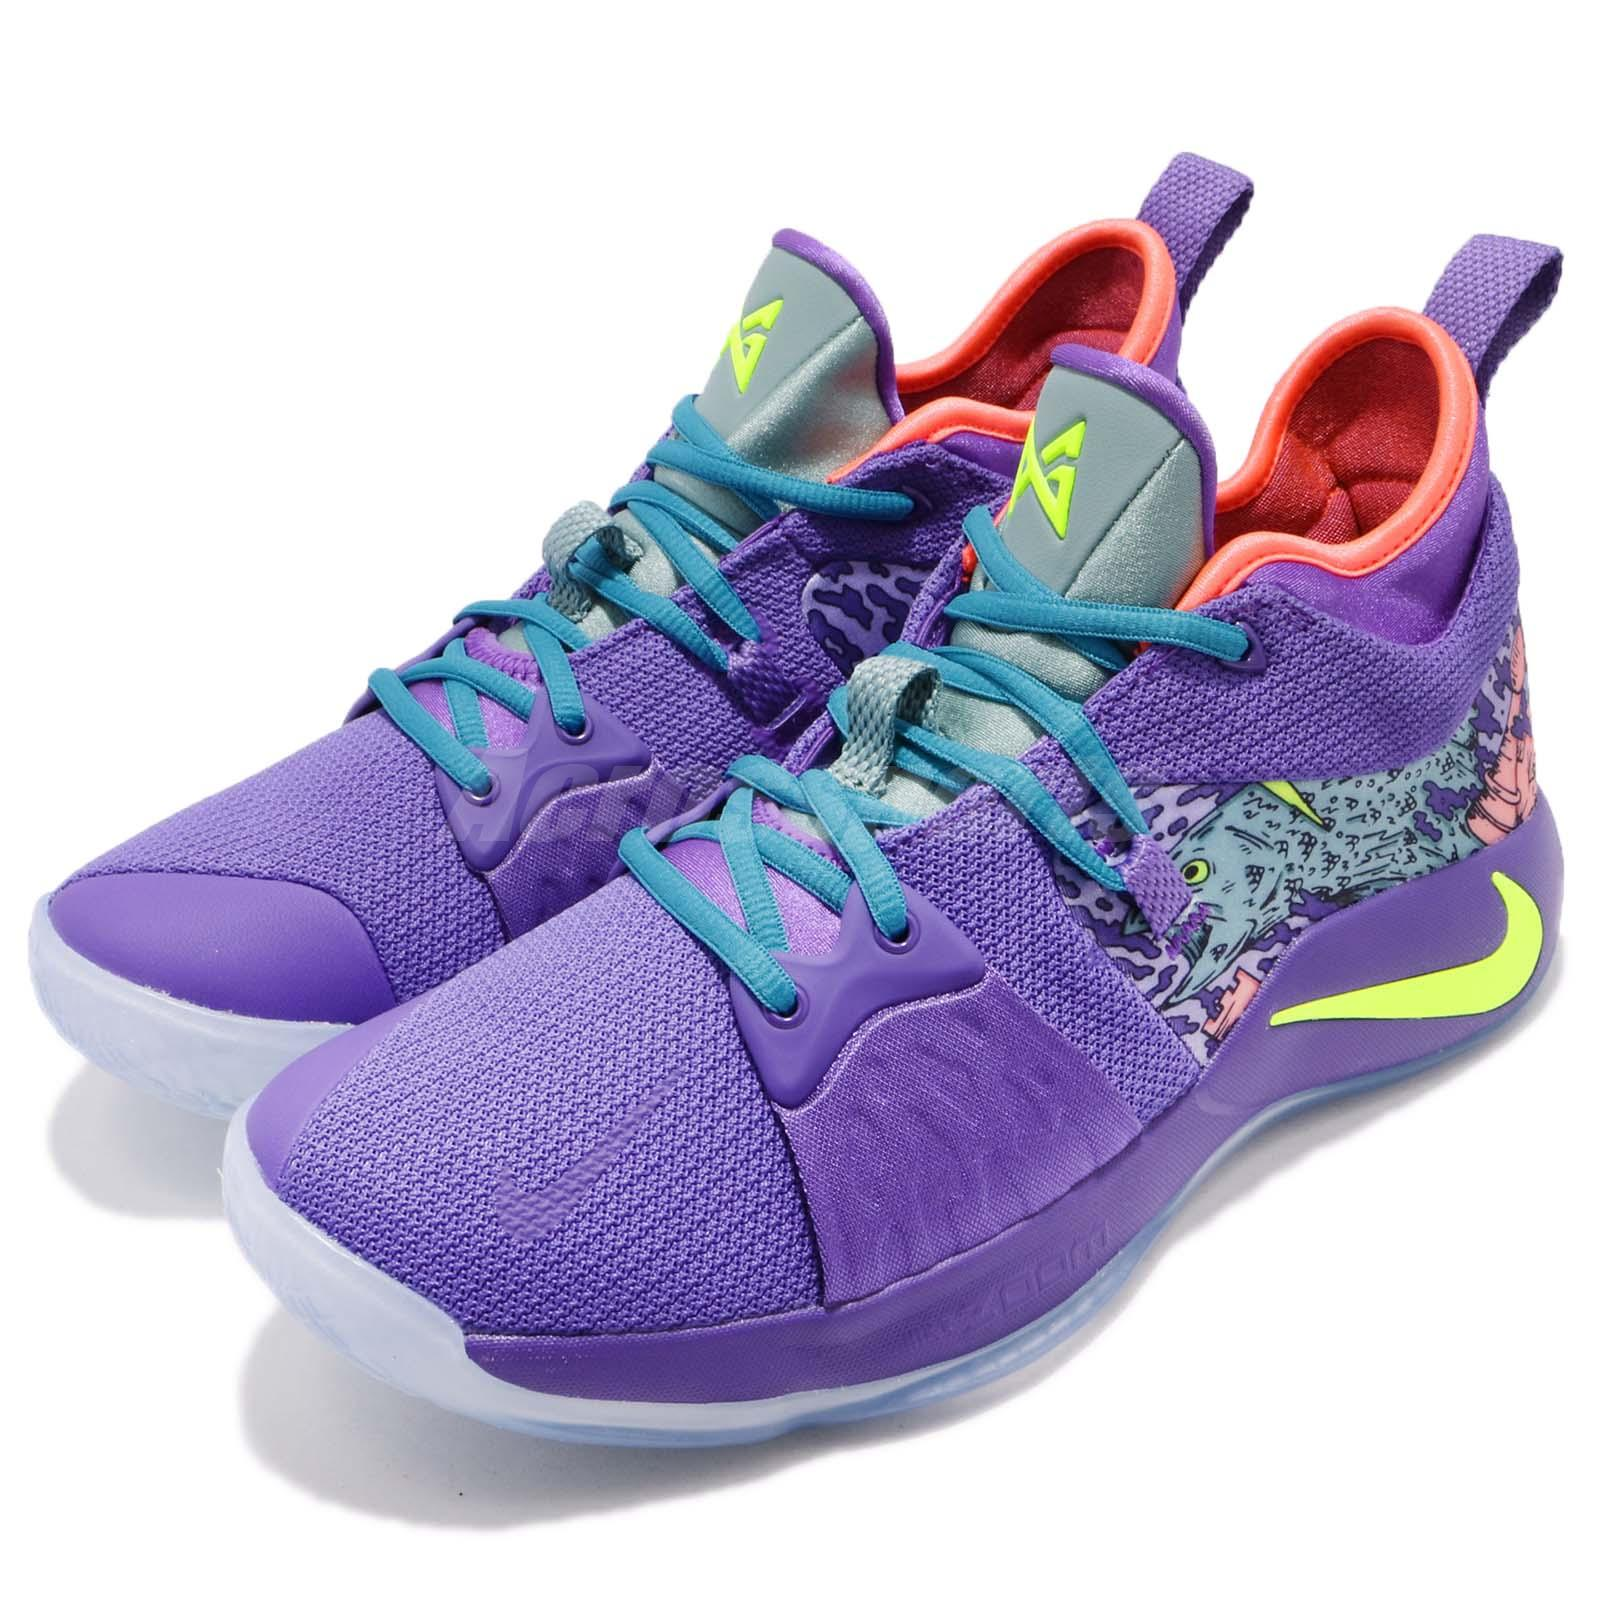 ed0e8c47d39 Details about Nike PG 2 MM EP II Paul George Mamba Mentality Purple Men  Basketball AO2985-001